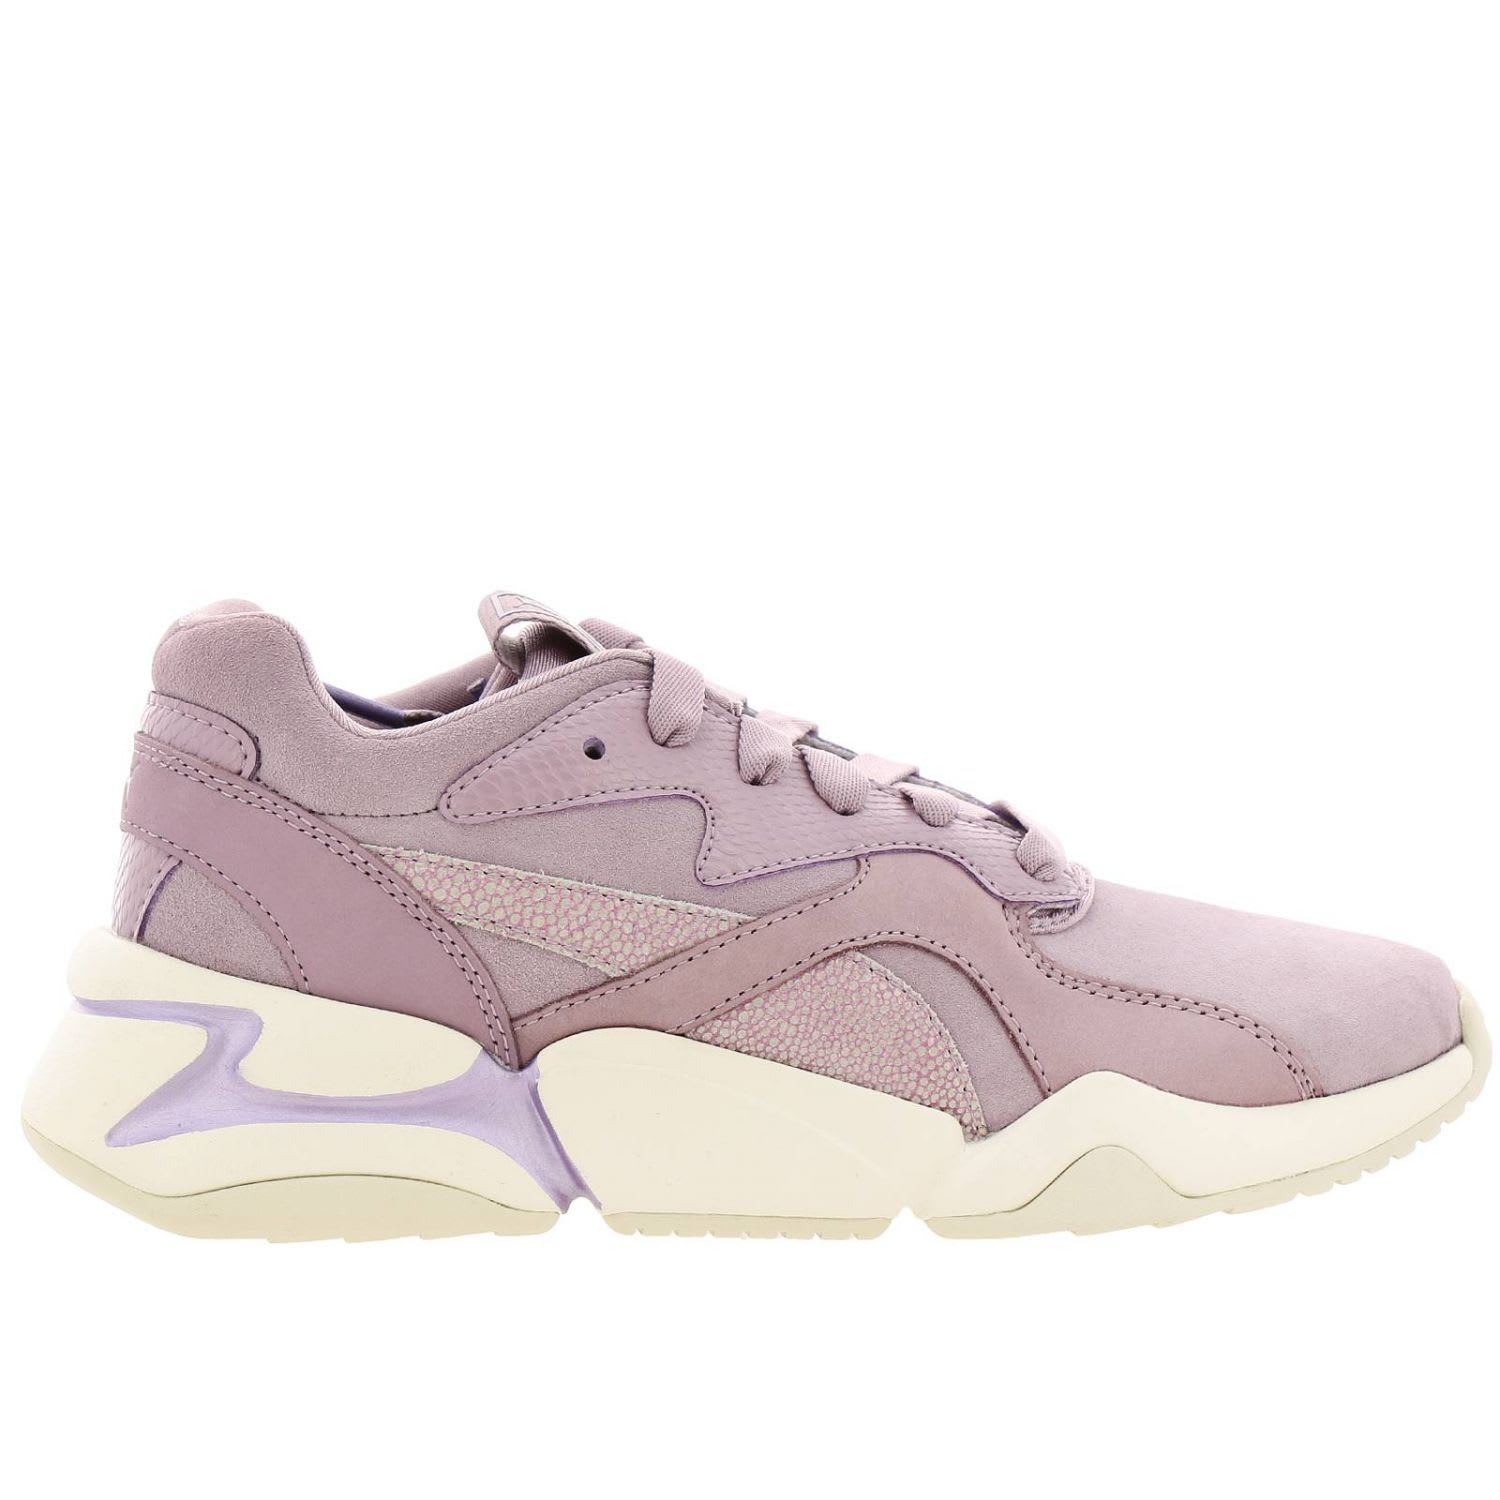 puma shoes women pink